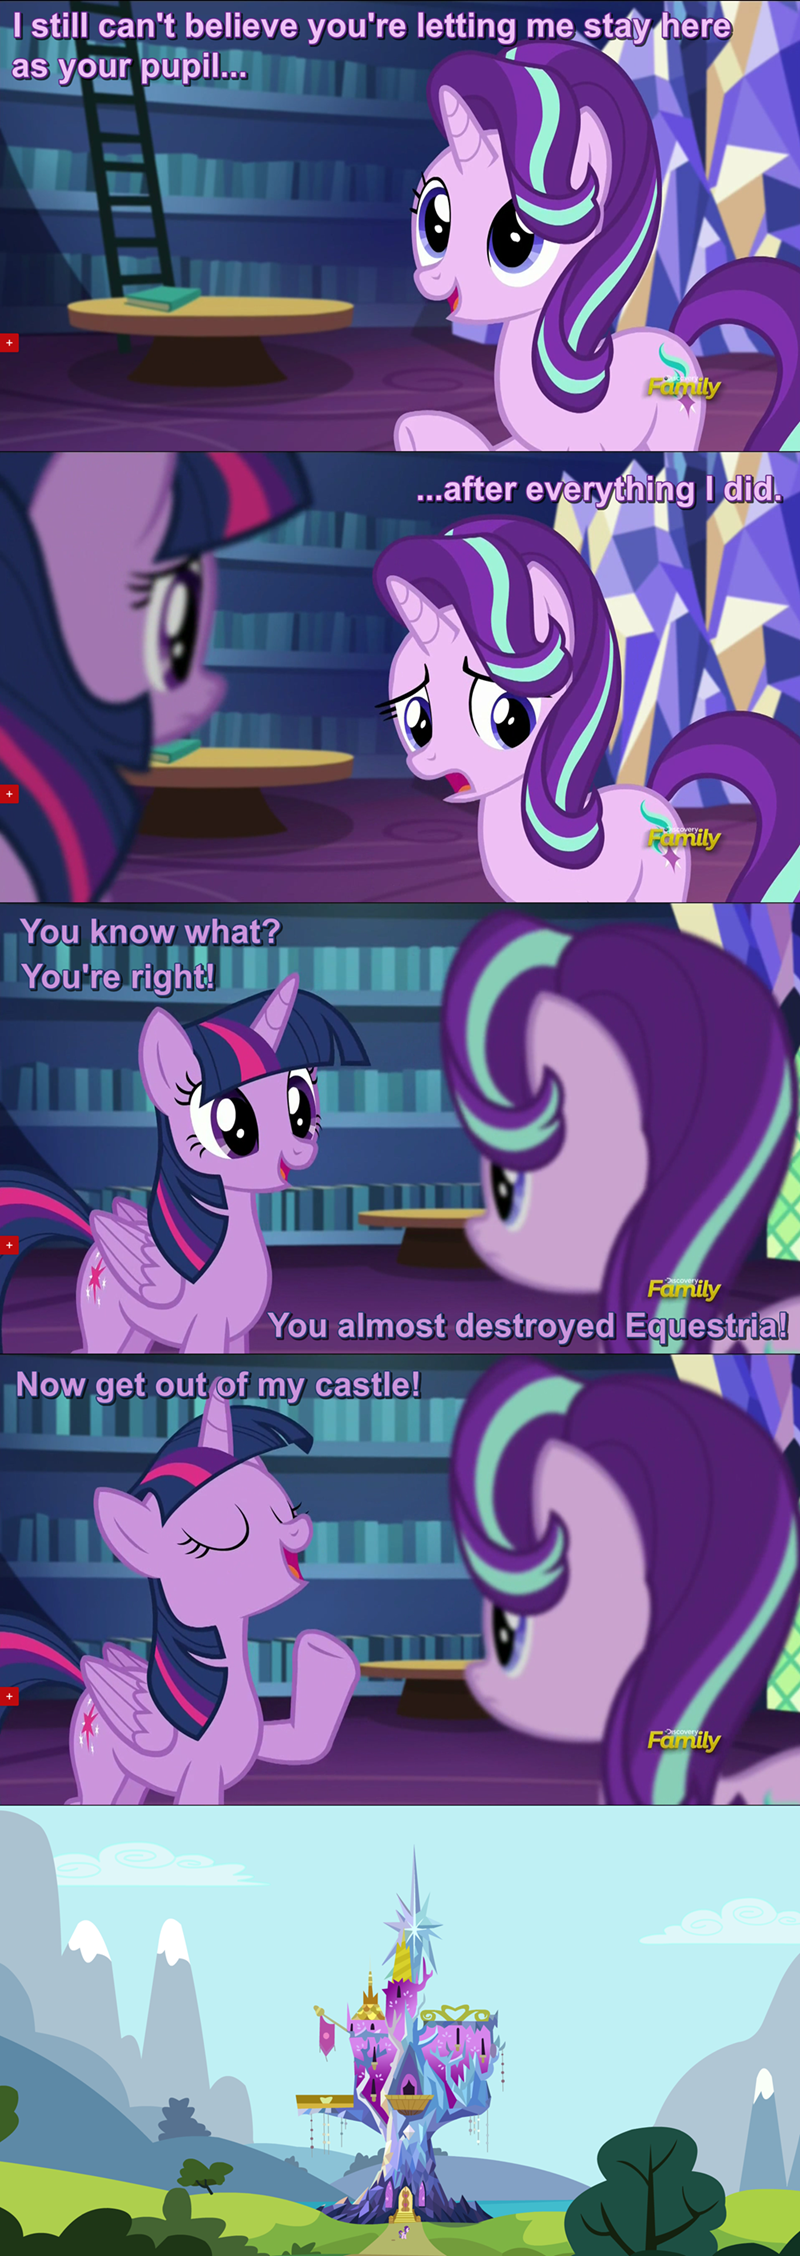 starlight glimmer,twilight sparkle,the crystalling,comic